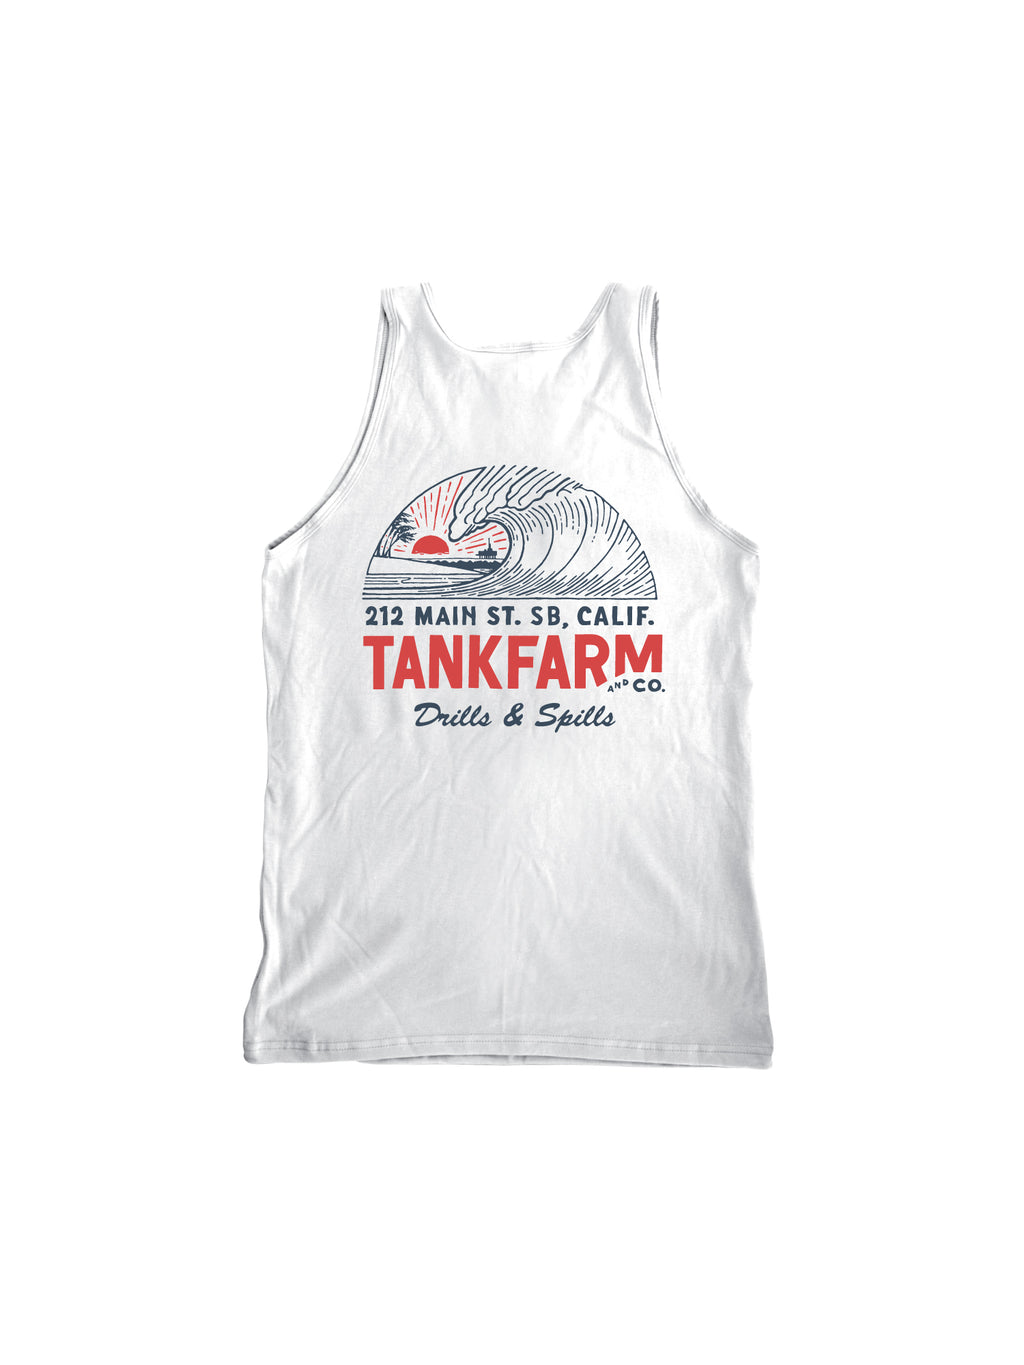 DRILLS & SPILLS TANK- WHITE - Tankfarm & Co.